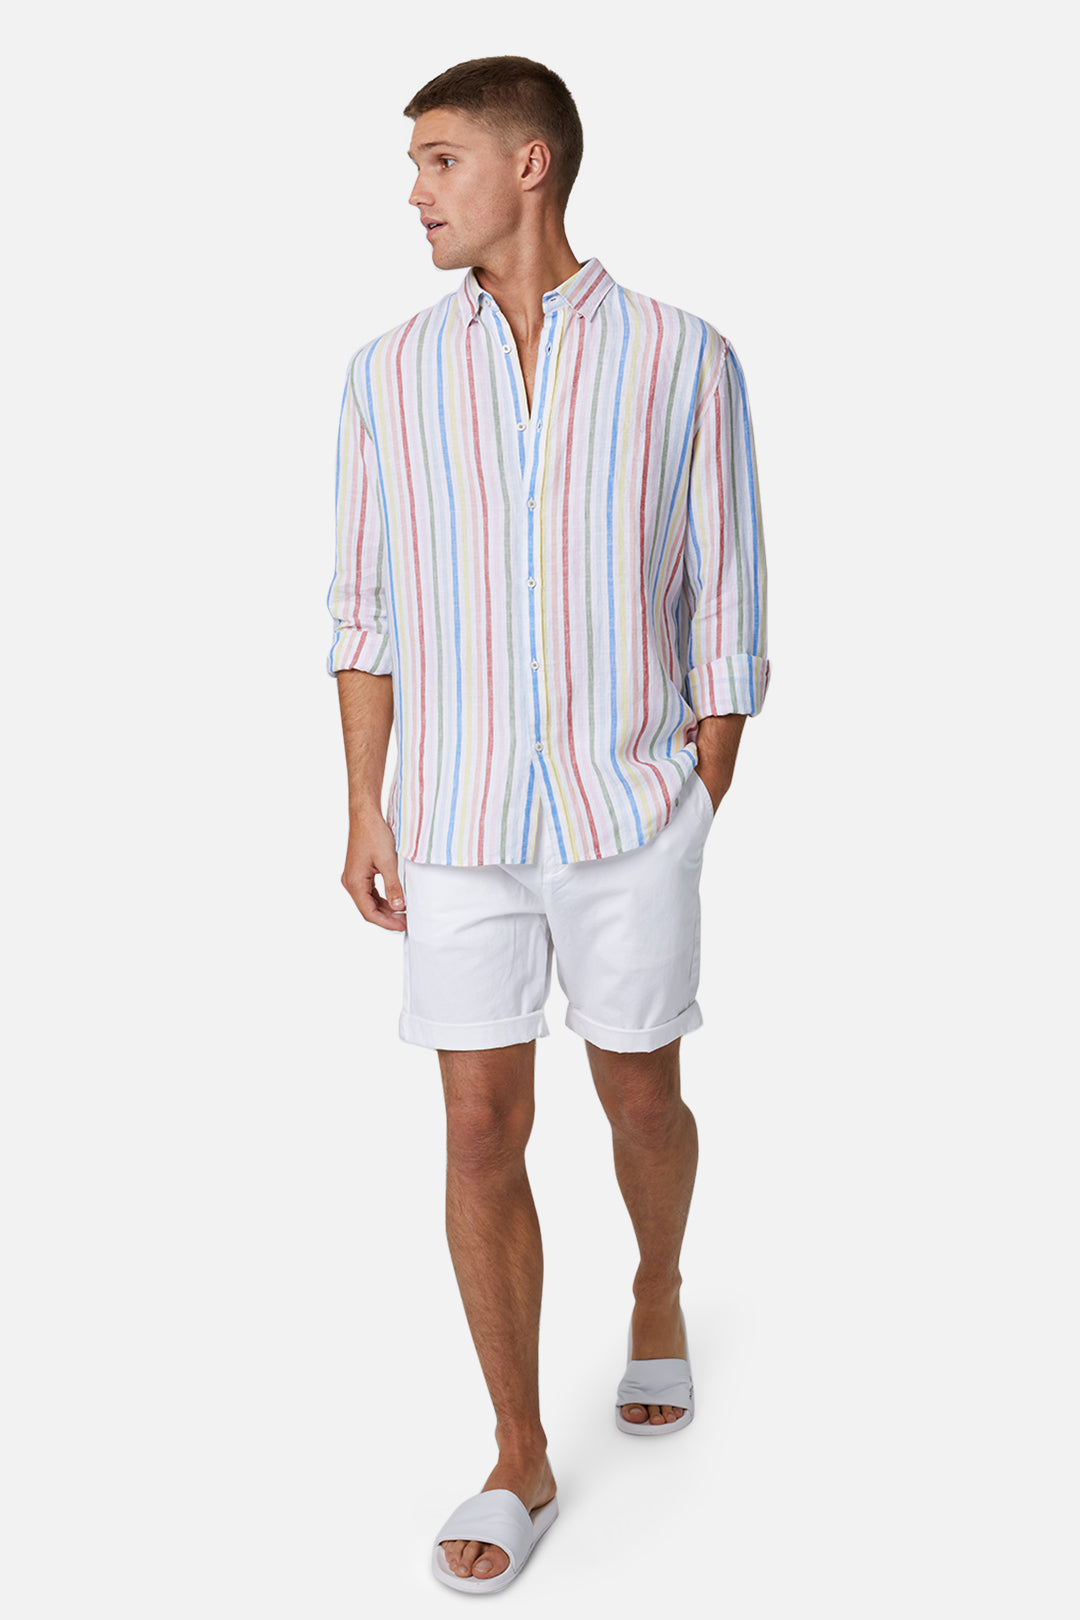 The Rinse Short - Antique White